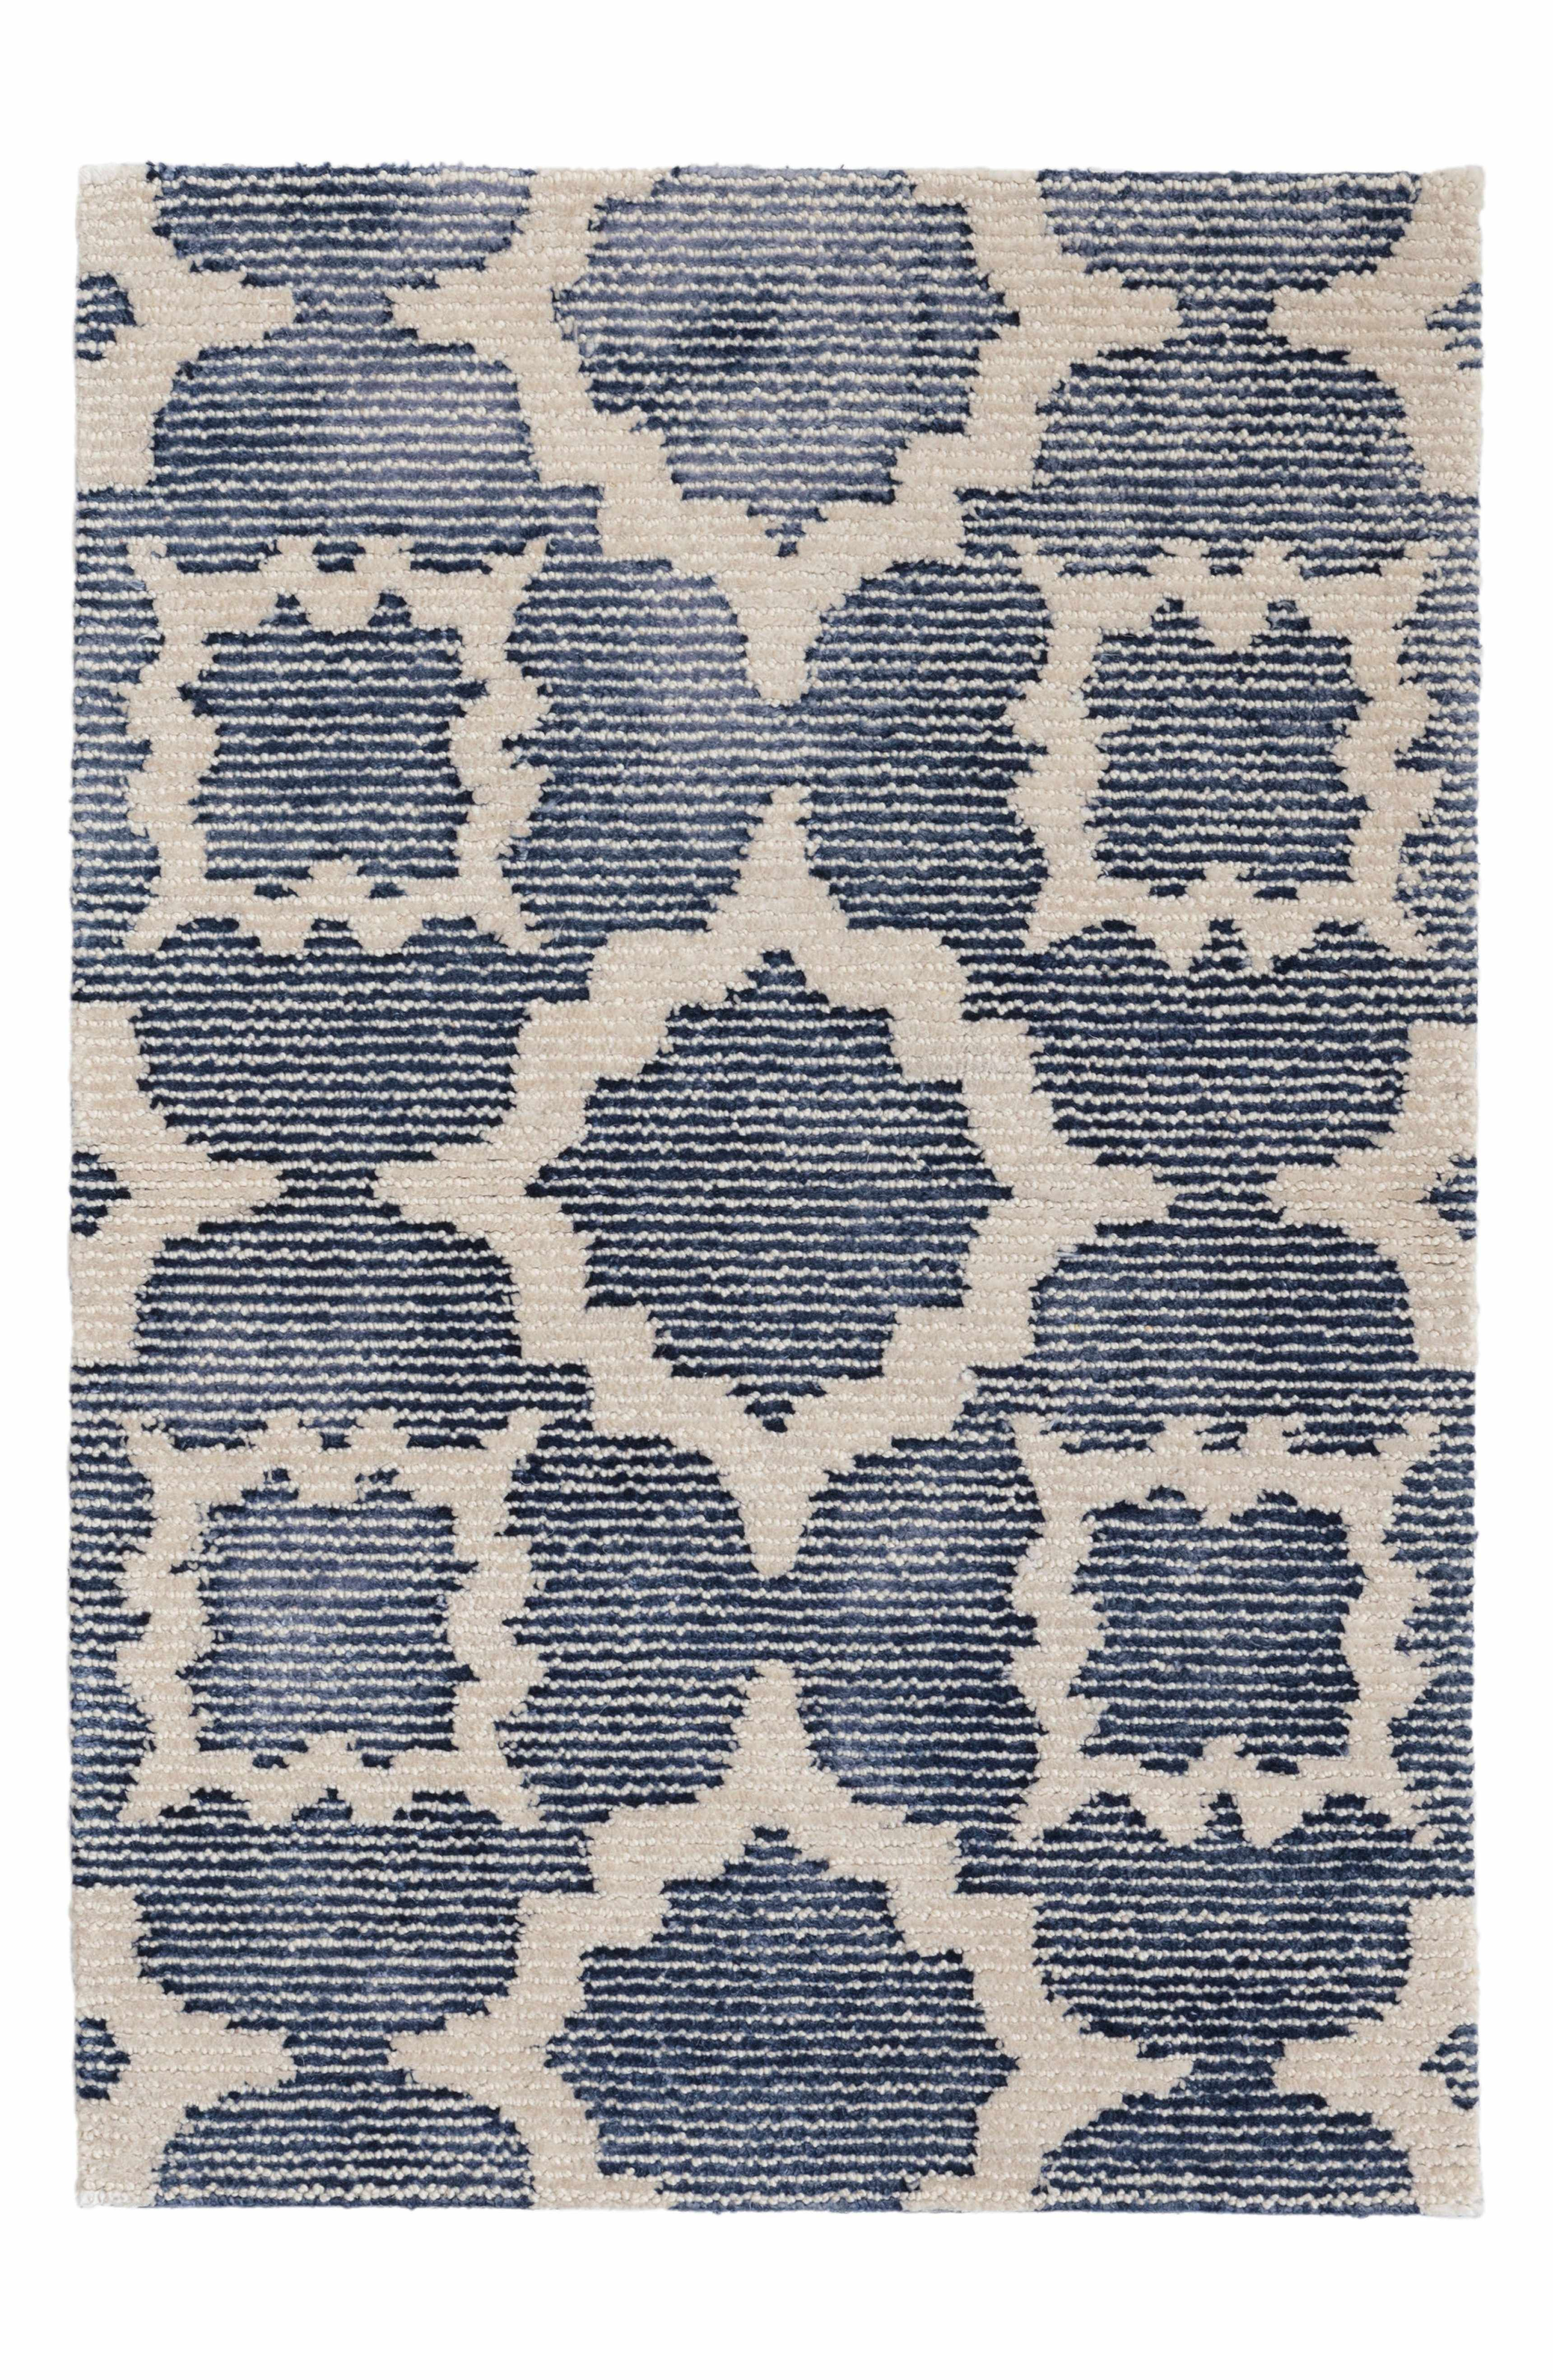 Main Image Dash Albert China Hand Knotted Wool Blend Rug